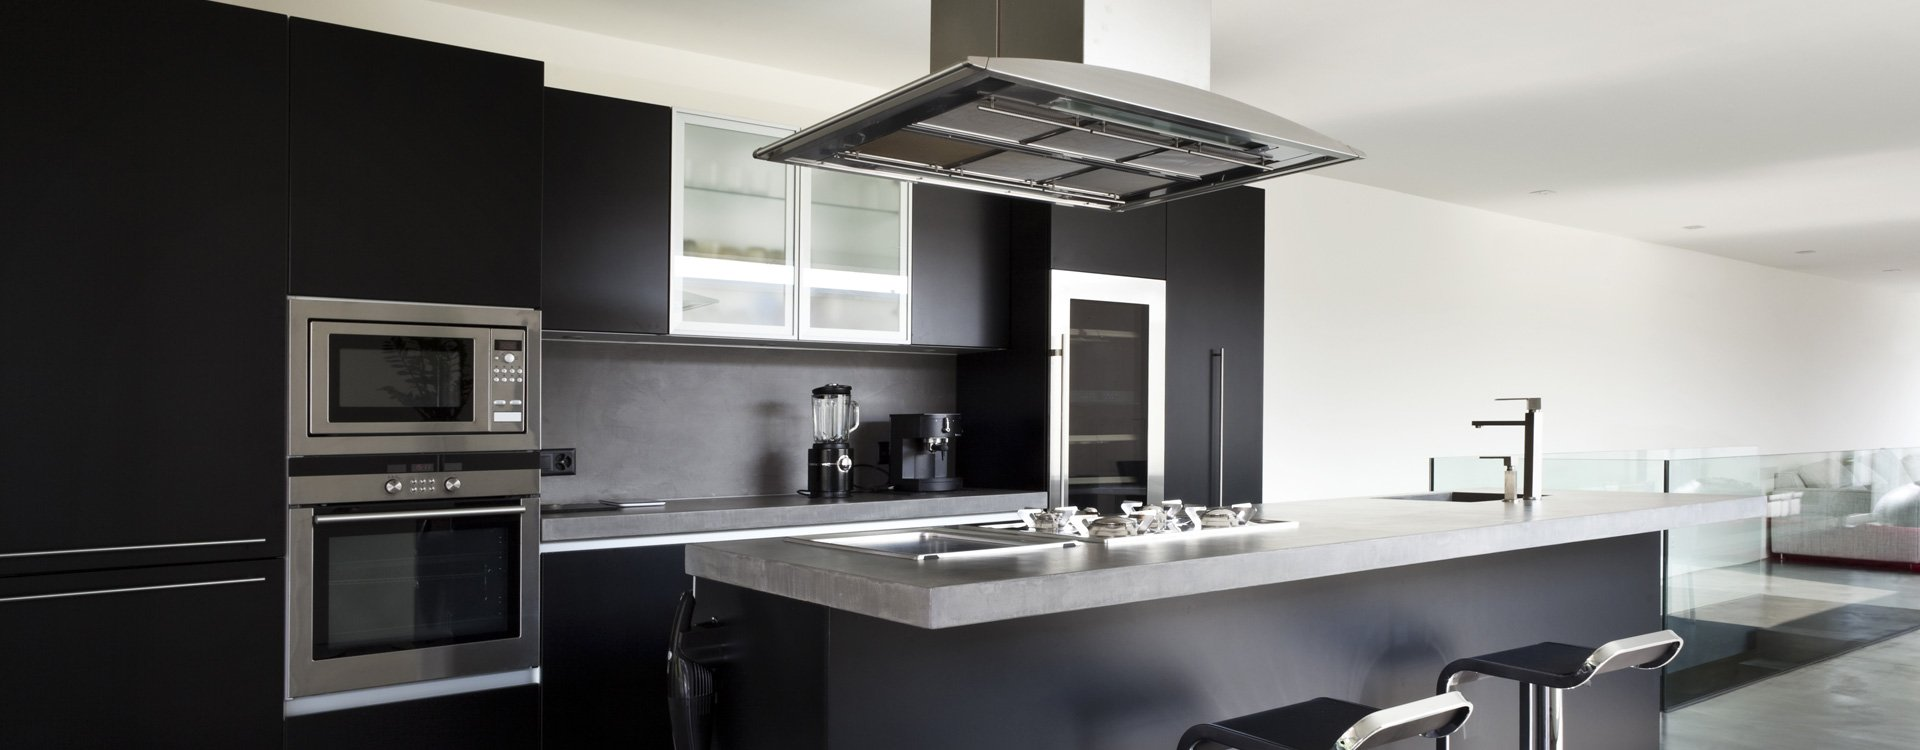 Are You Looking For Kitchen Appliance Installation?